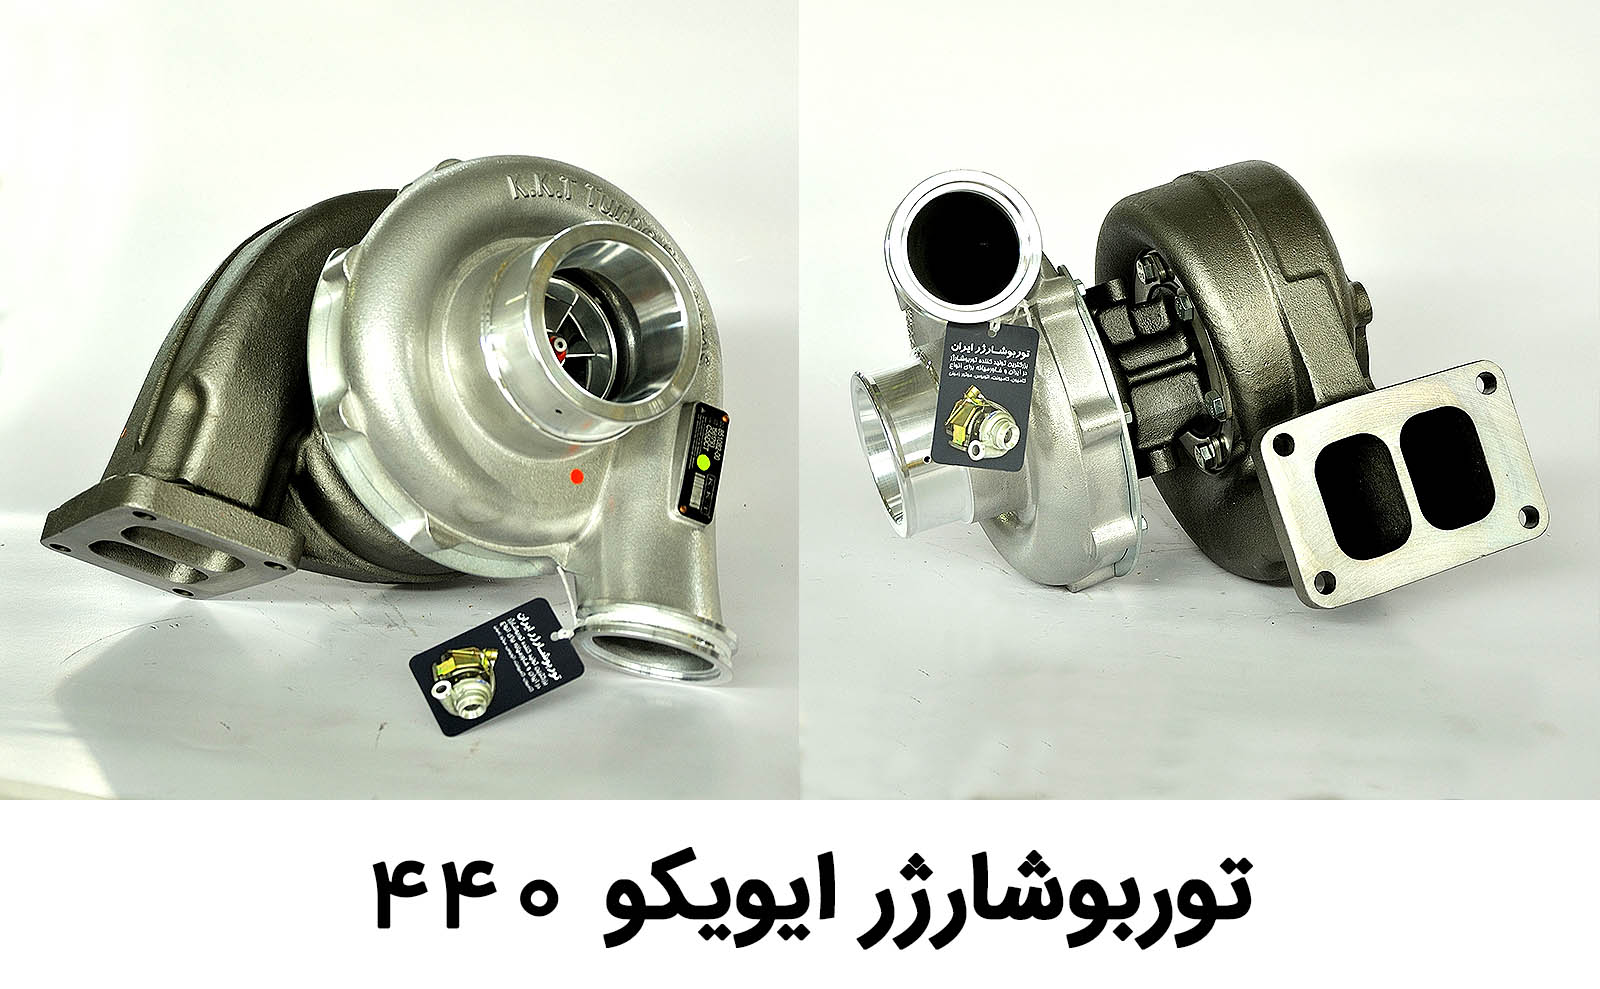 iveco_440_turbocharger